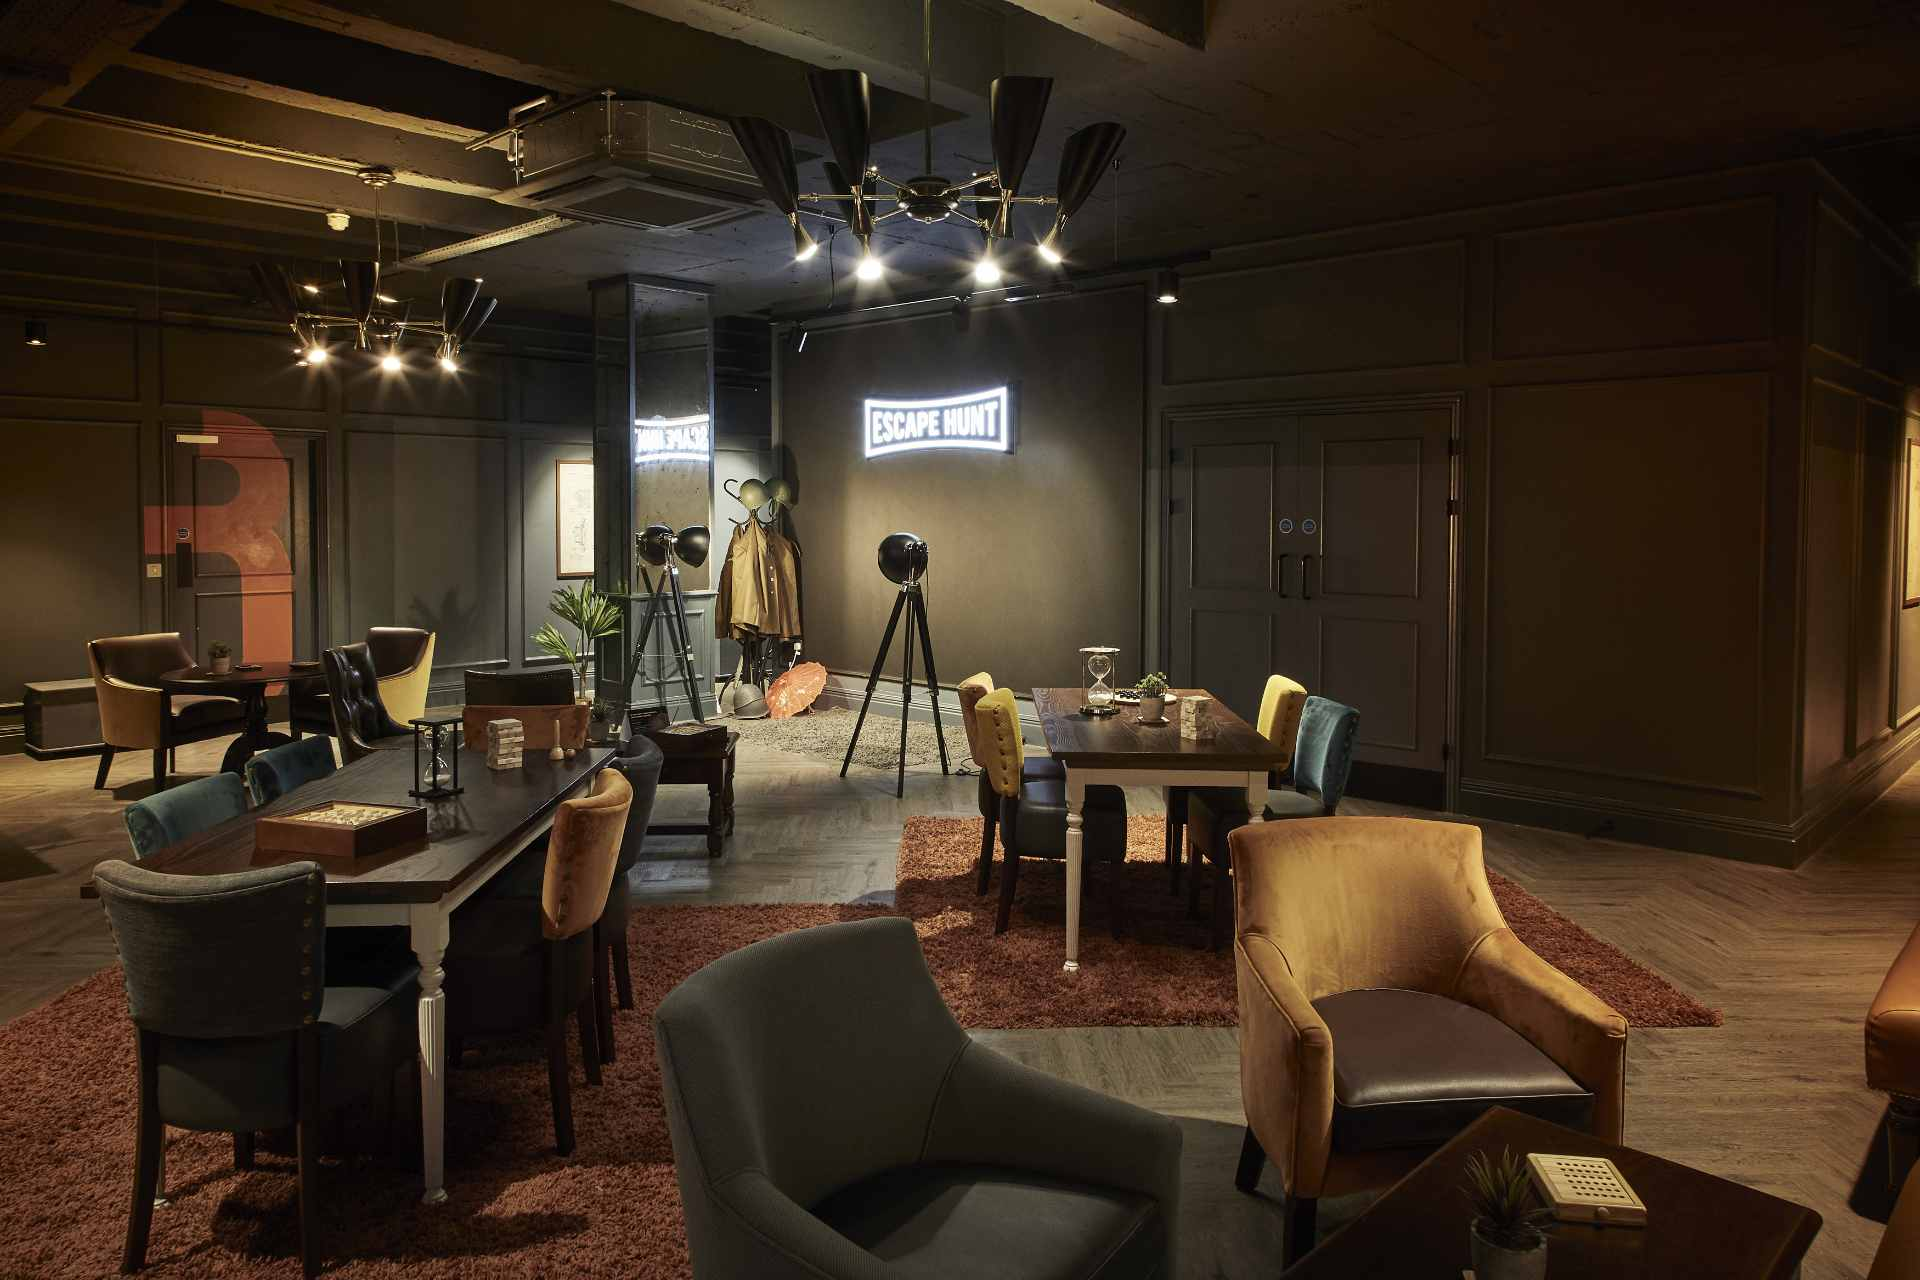 tables-in-dark-room-at-escape-hunt-date-ideas-liverpool